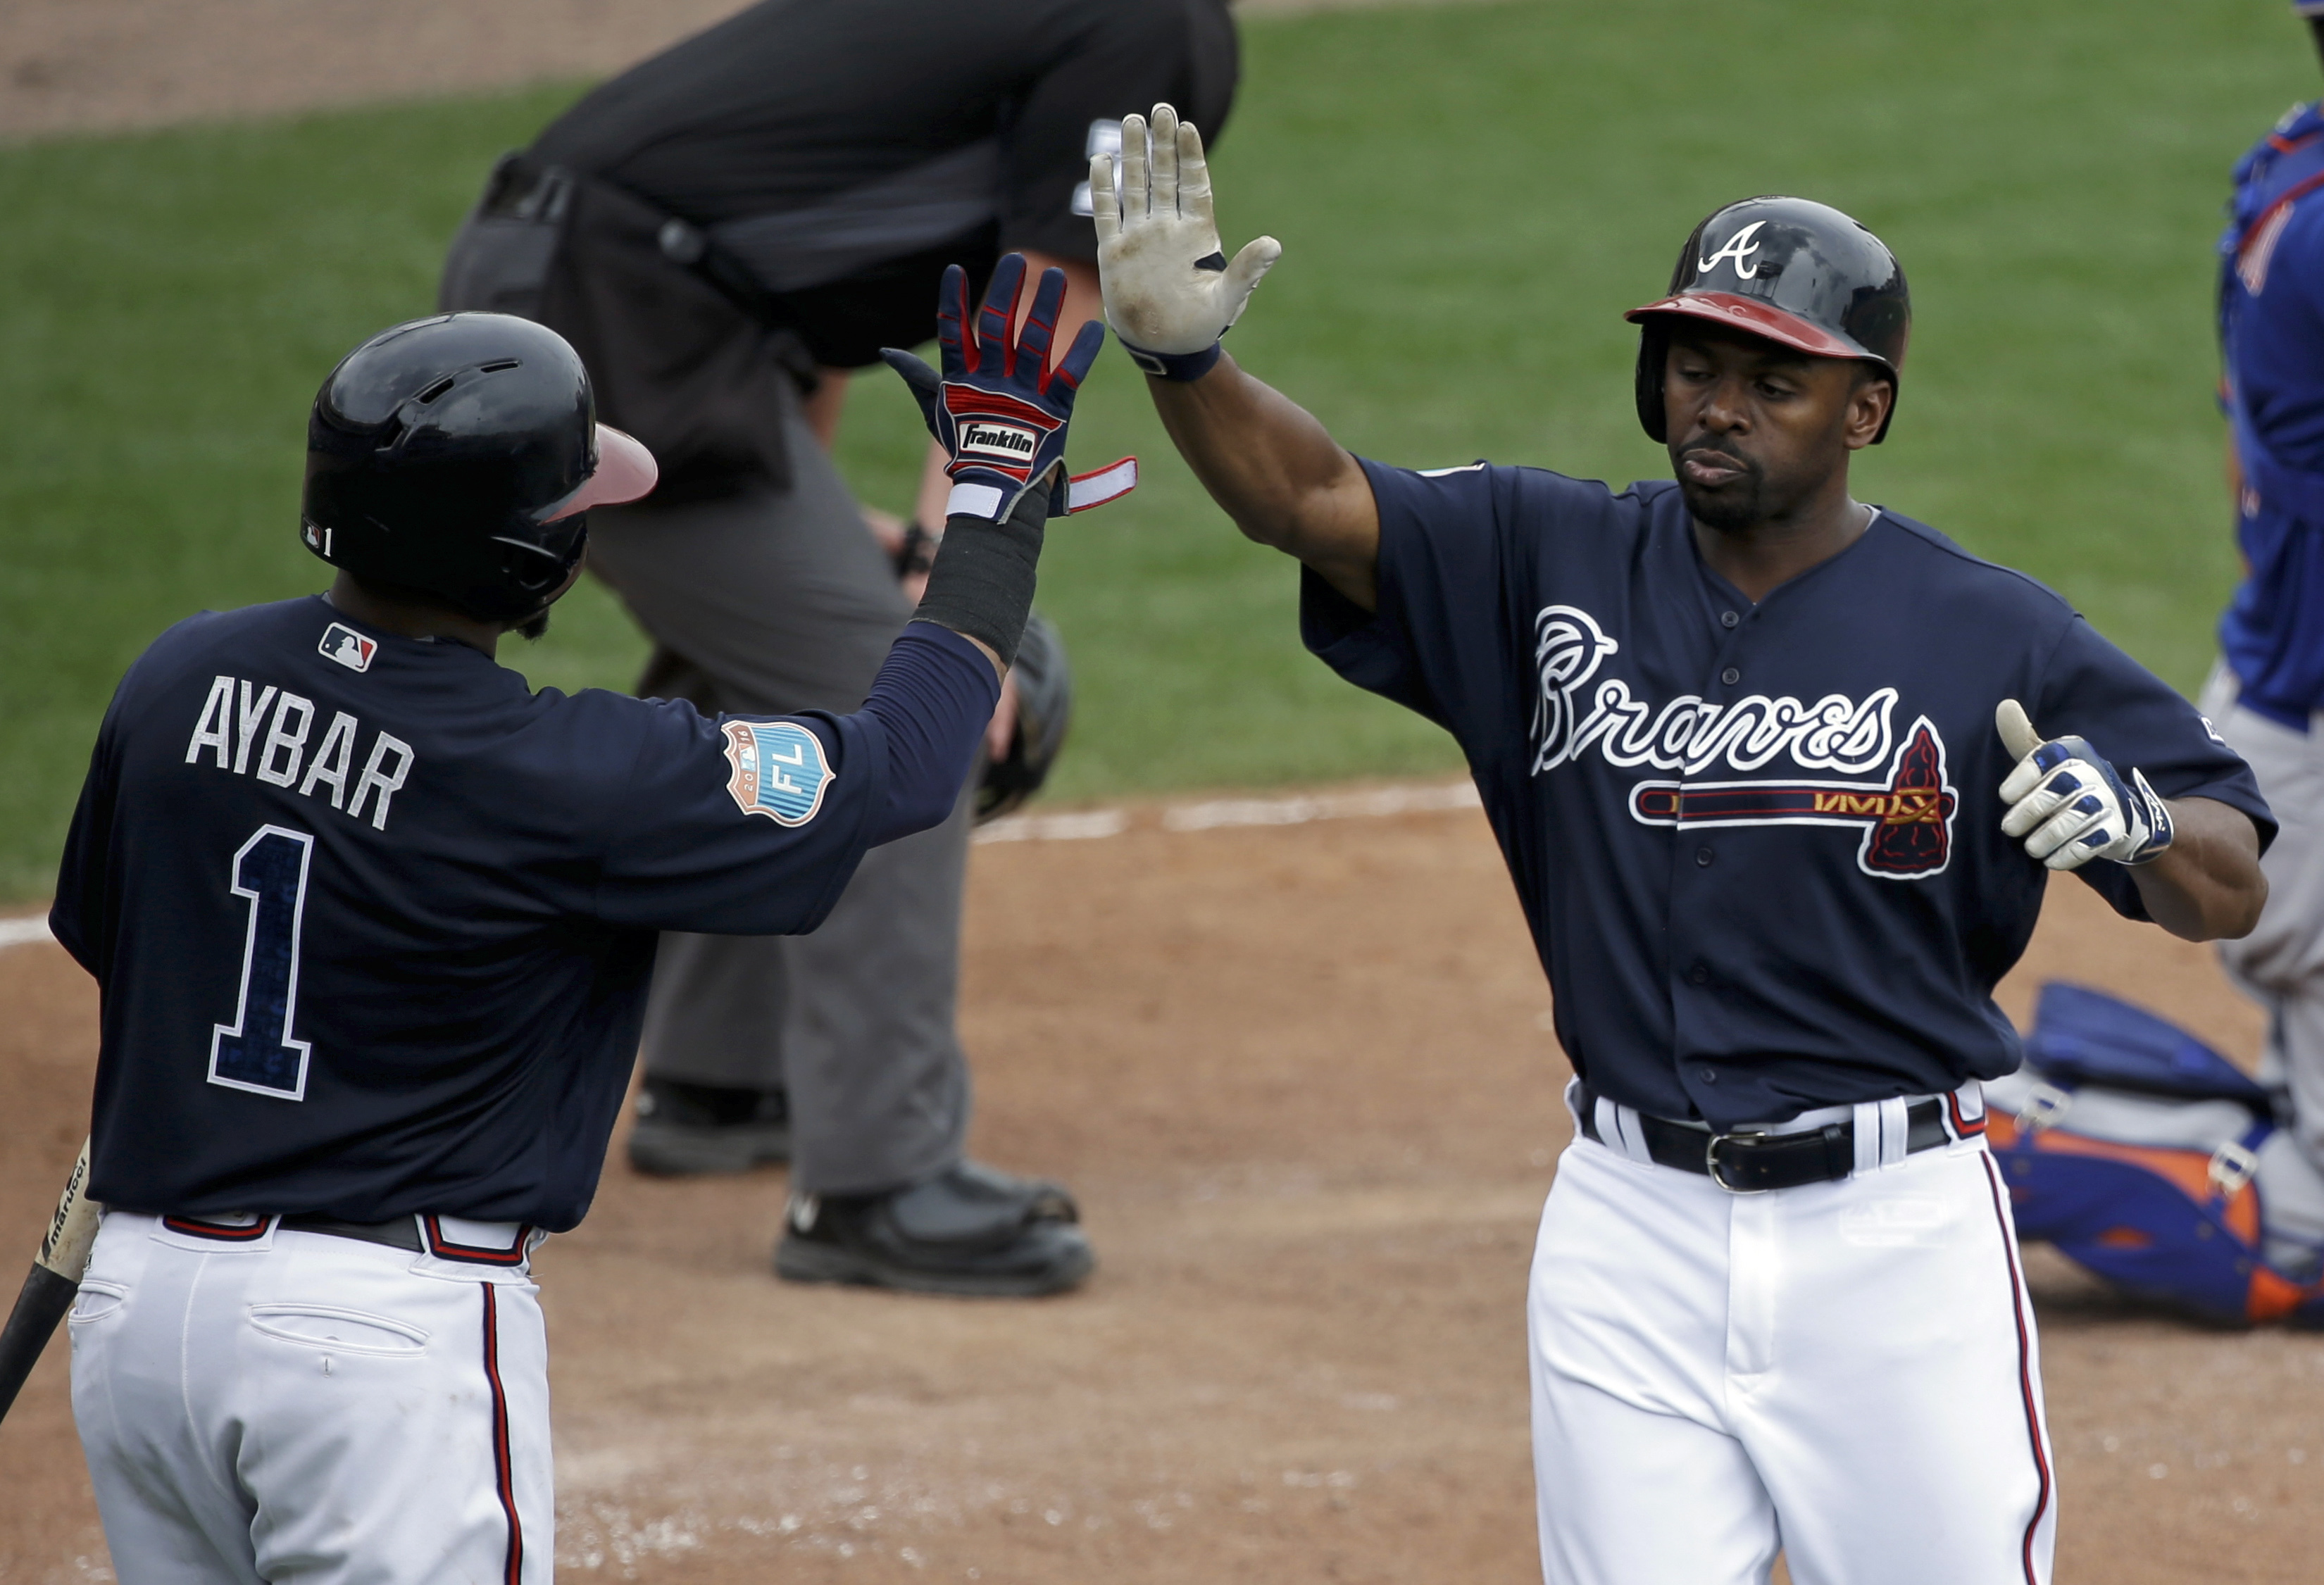 Atlanta Braves' Michael Bourn, right, gets a high-five from teammate Erick Aybar (1) after scoring a run in the sixth inning of a spring training baseball game against the New York Mets, Saturday, March 26, 2016, in Kissimmee, Fla. (AP Photo/John Raoux)